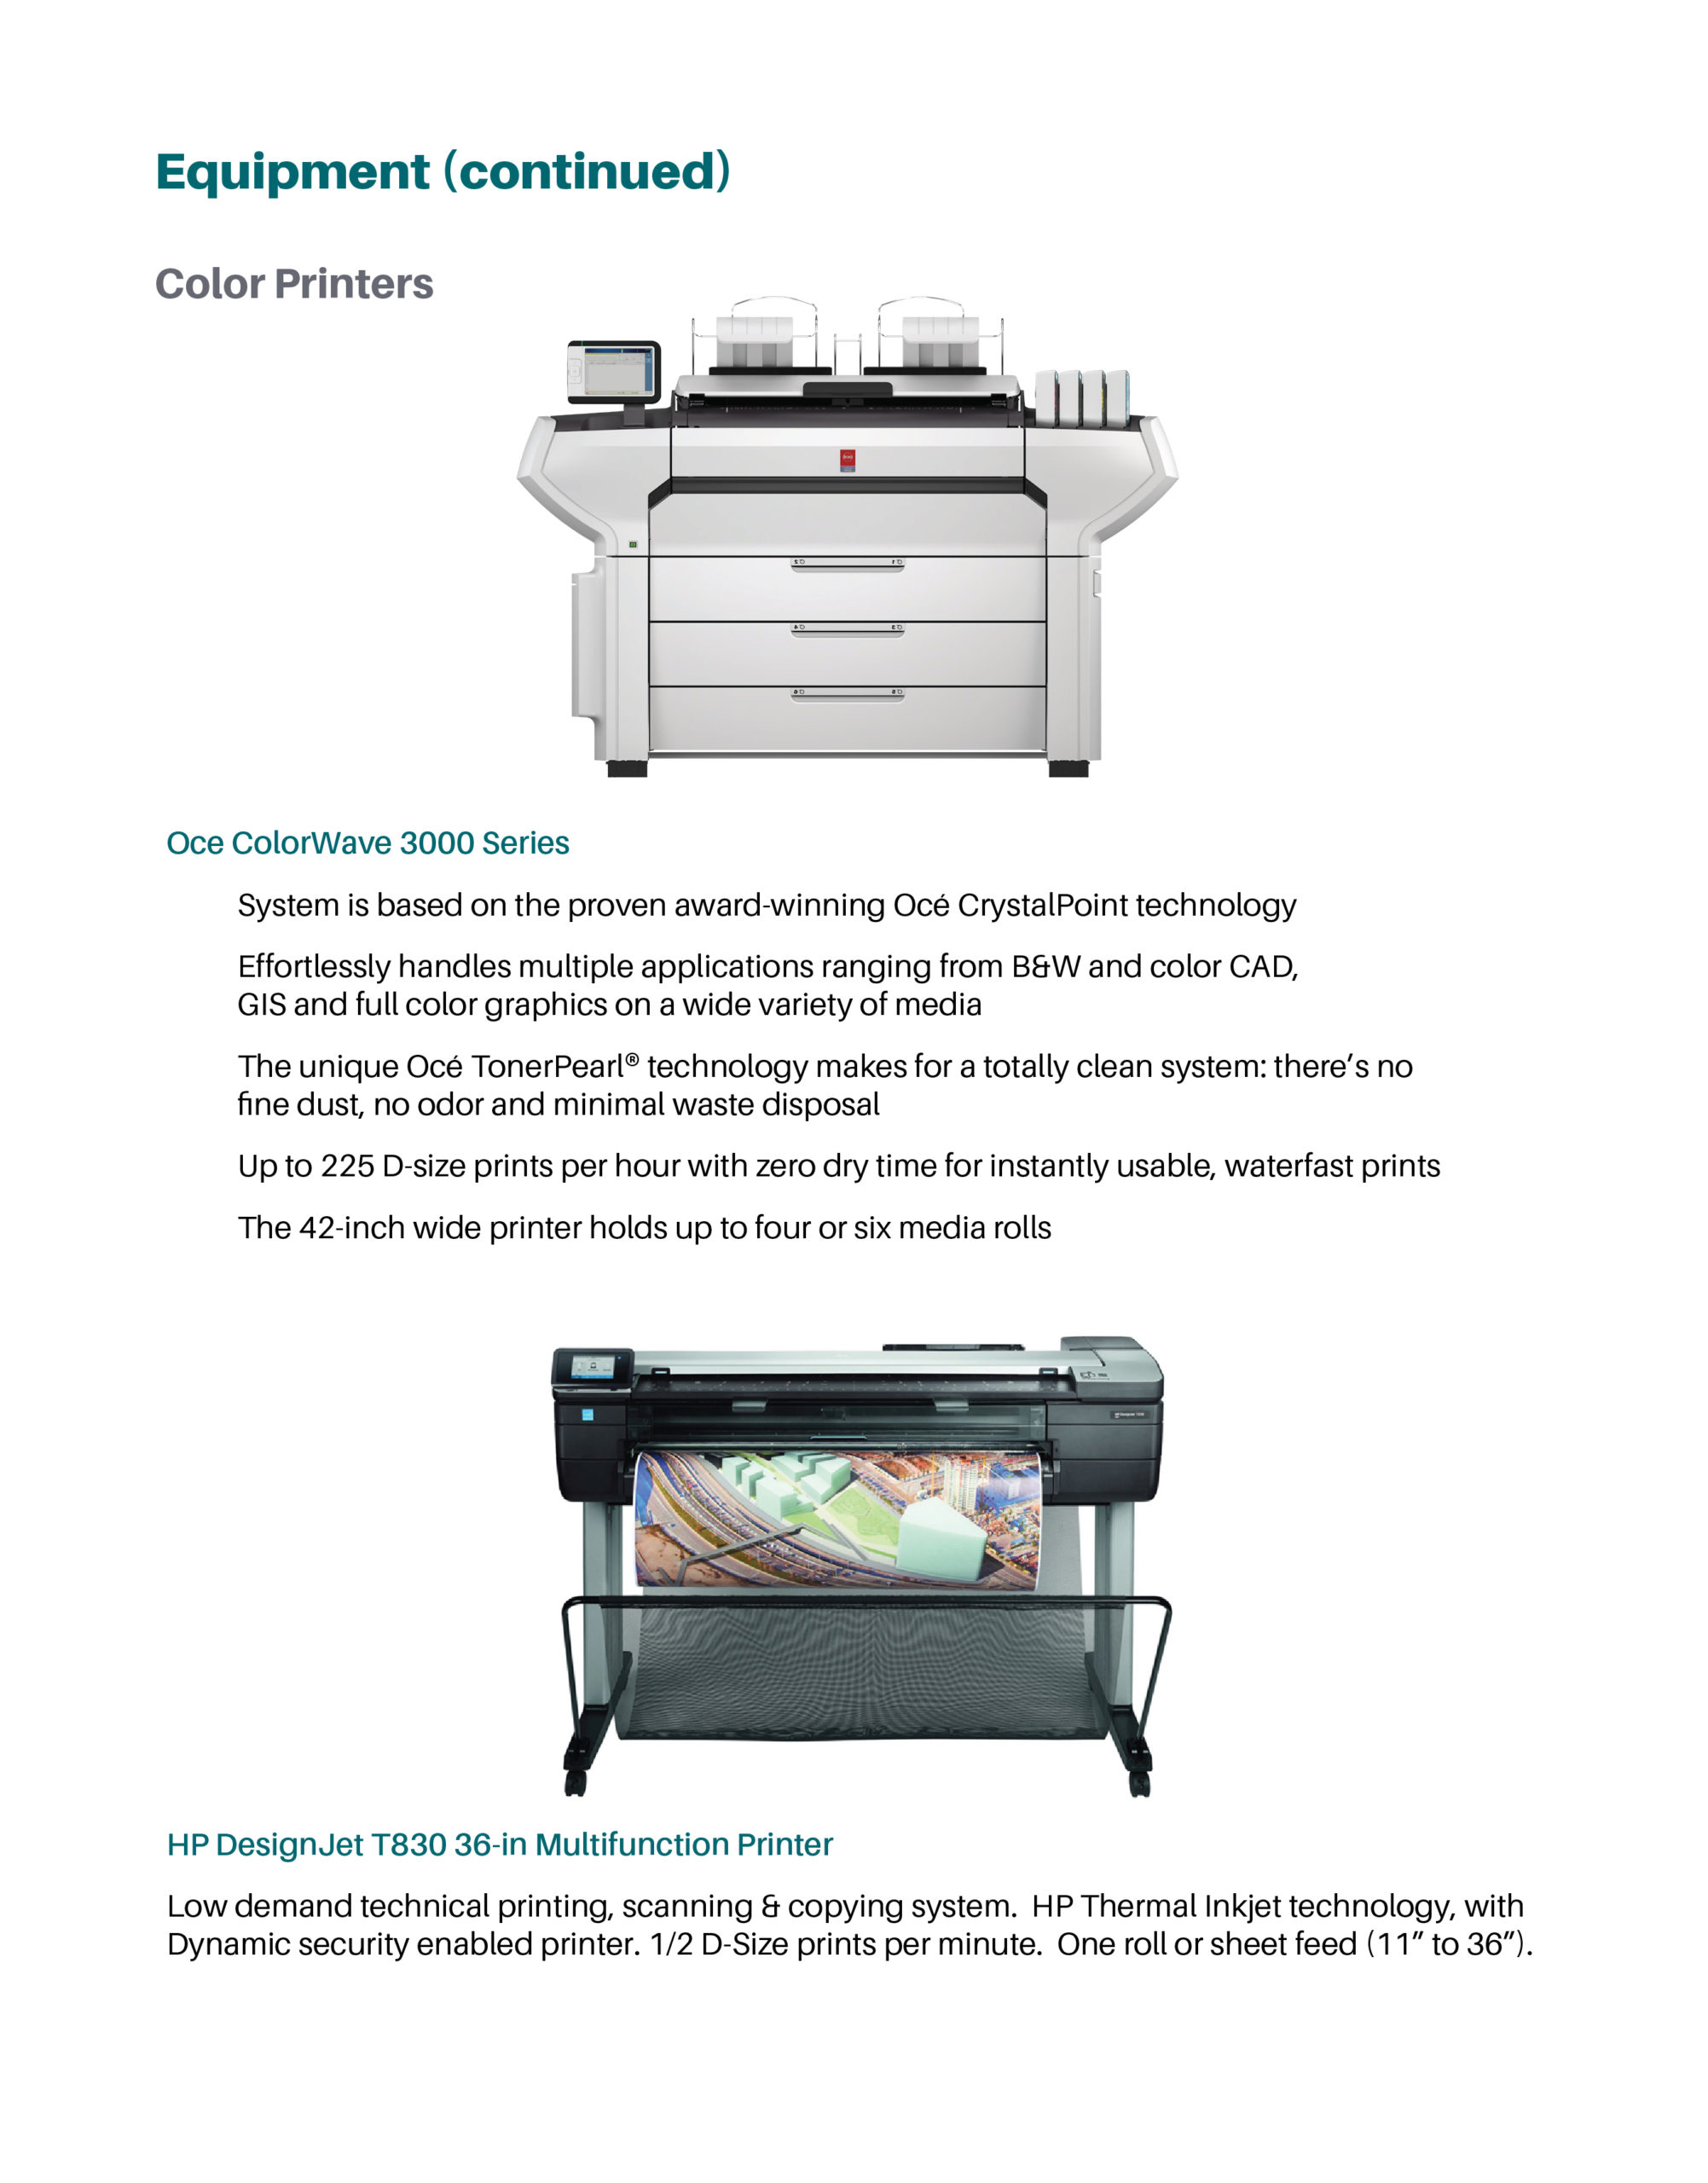 Page featuring product details on color printers